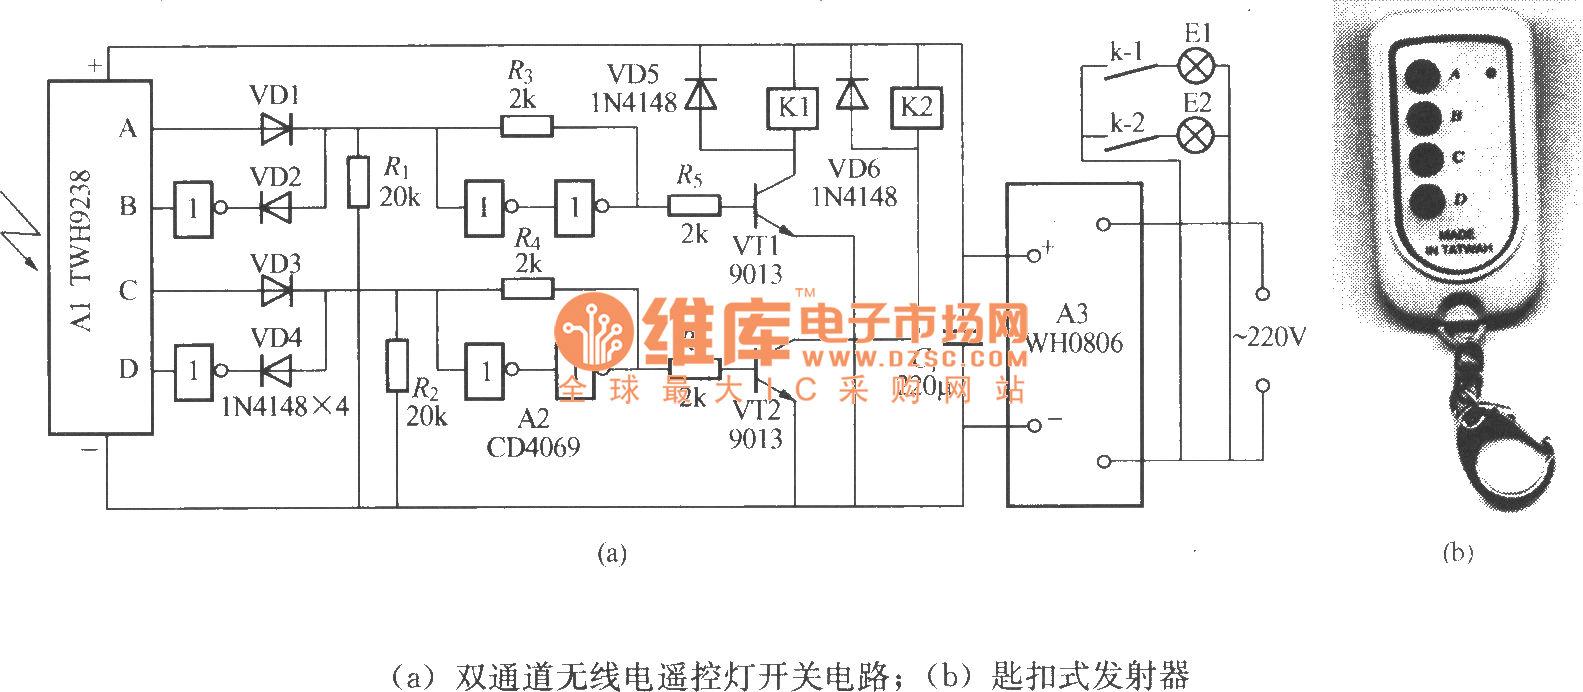 Remote Control Circuit Diagram Of Light Modern Design Wiring Electronic Hobby Circuits Ne 555 Ic Internal Dual Channel Radio Switch Rh Seekic Com Pdf Using